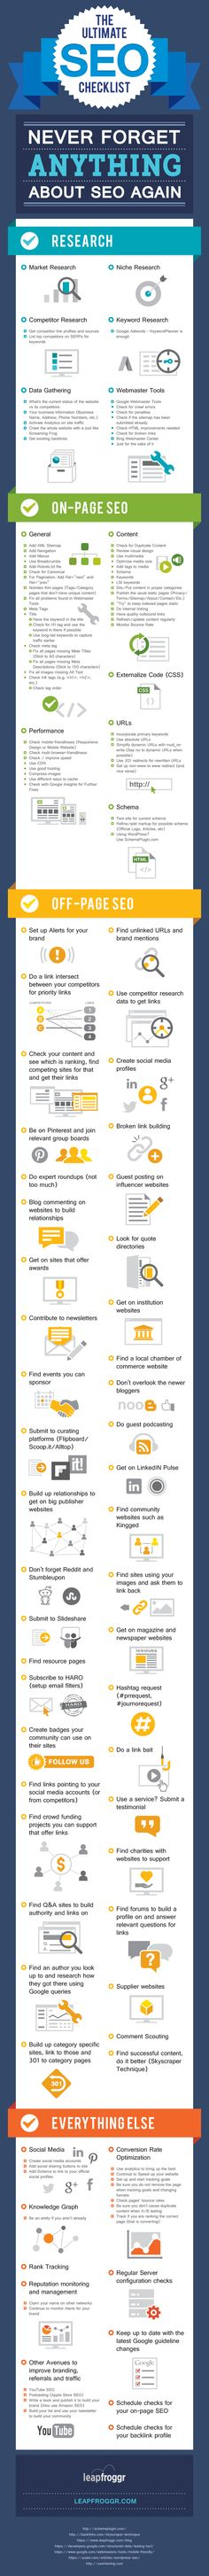 The Ultimate SEO Checklist: Never Forget Anything About SEO Ever Again